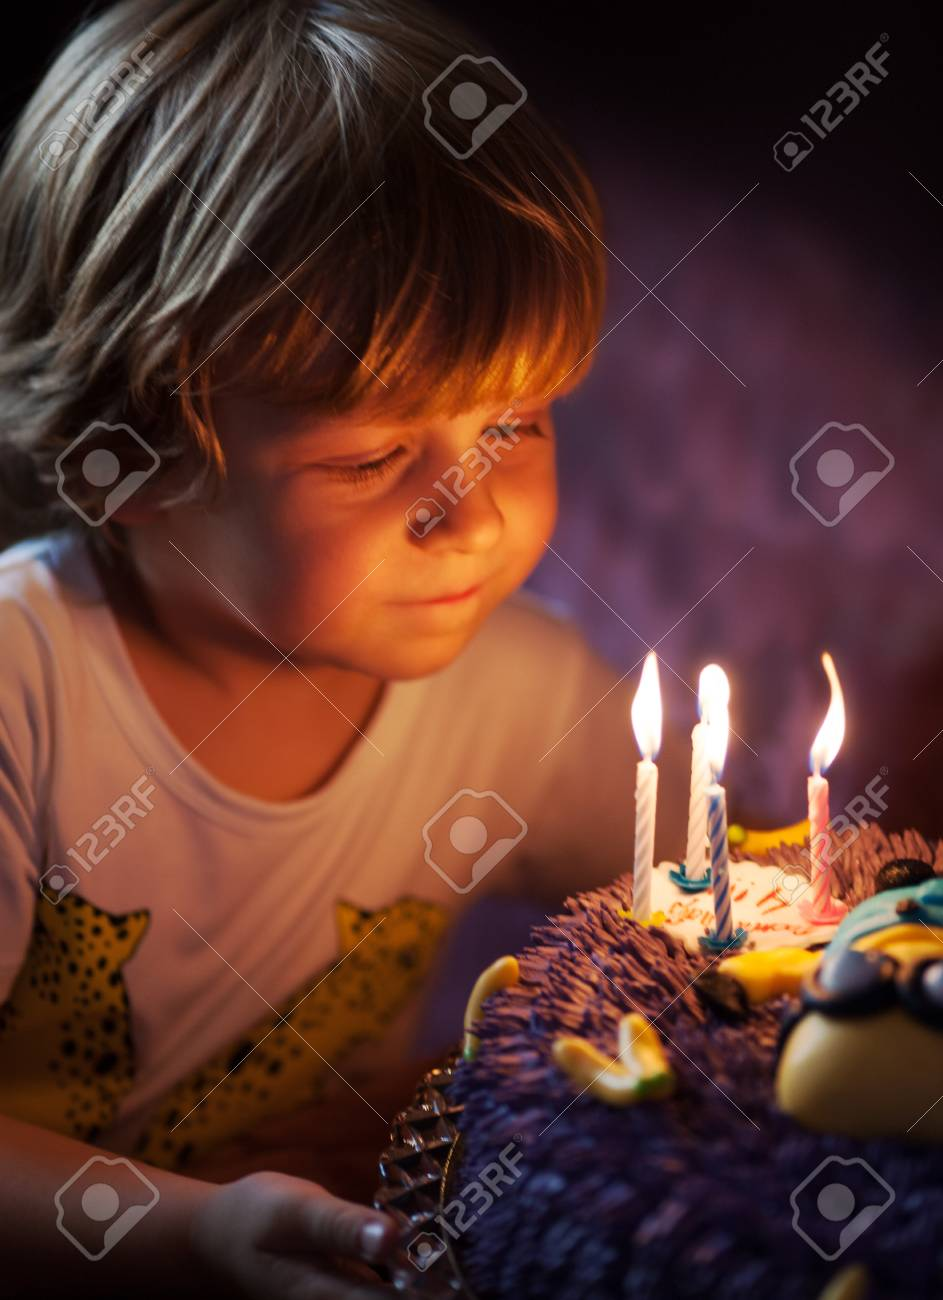 Little Boy Blows Out Candles In The Cake For His 4th Birthday Stock Photo